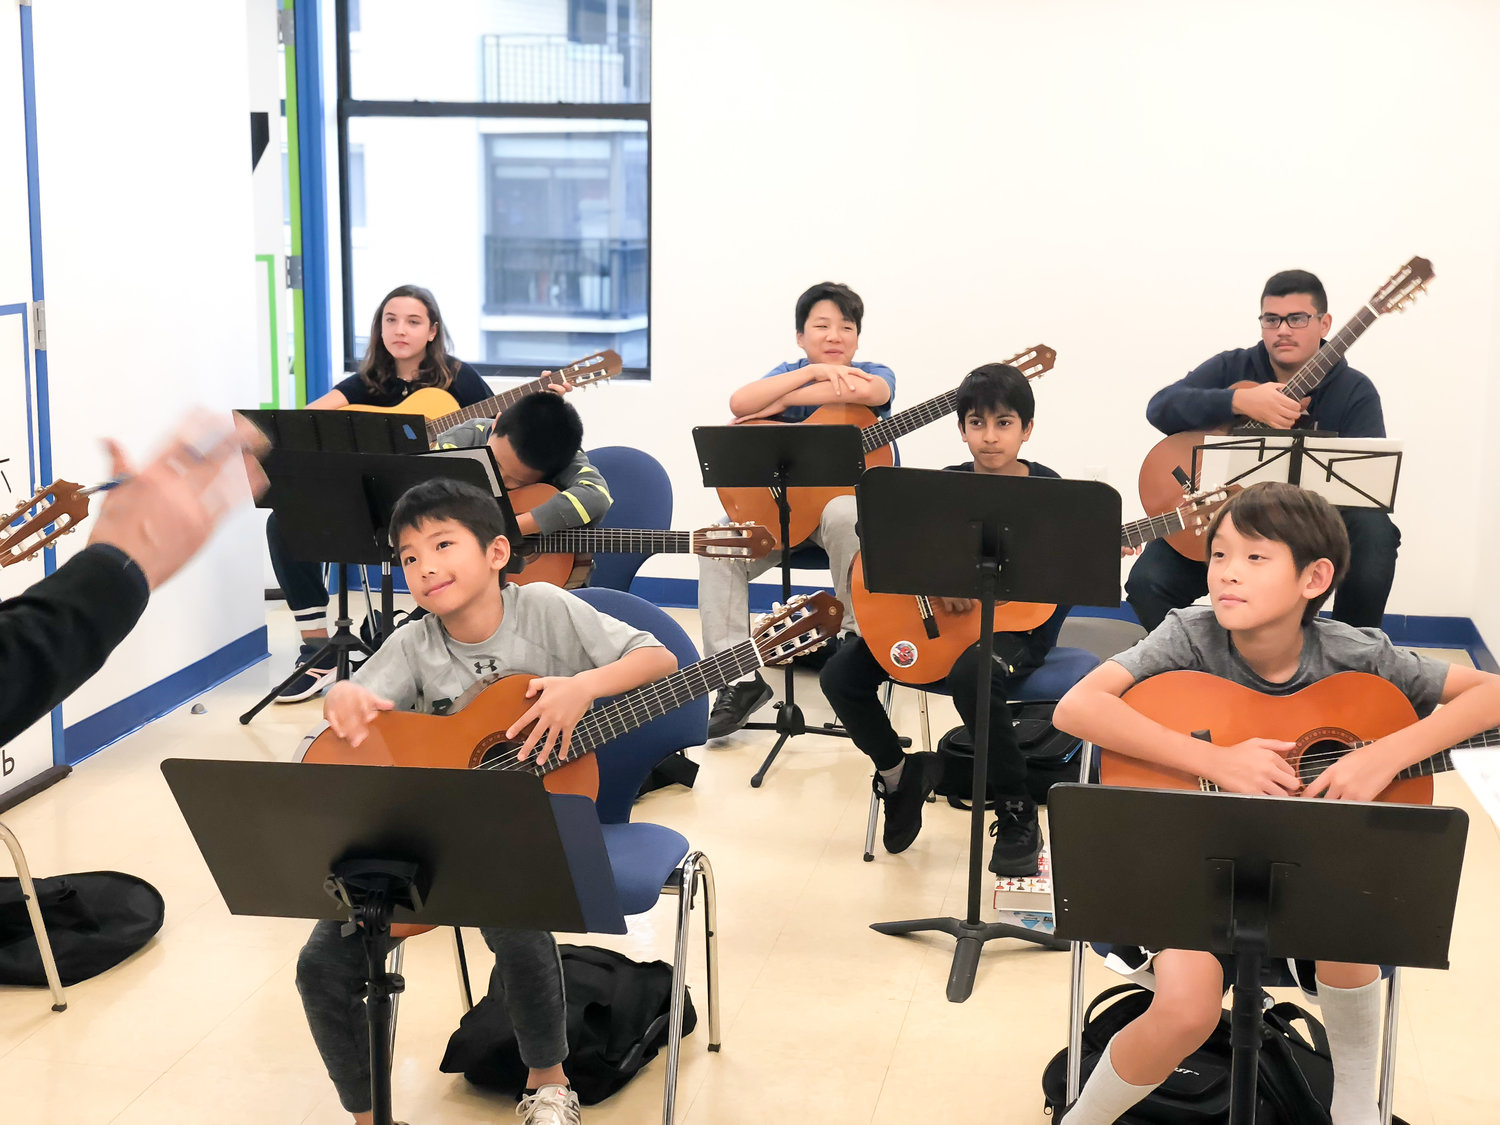 guitar-class-fort-lee.jpg